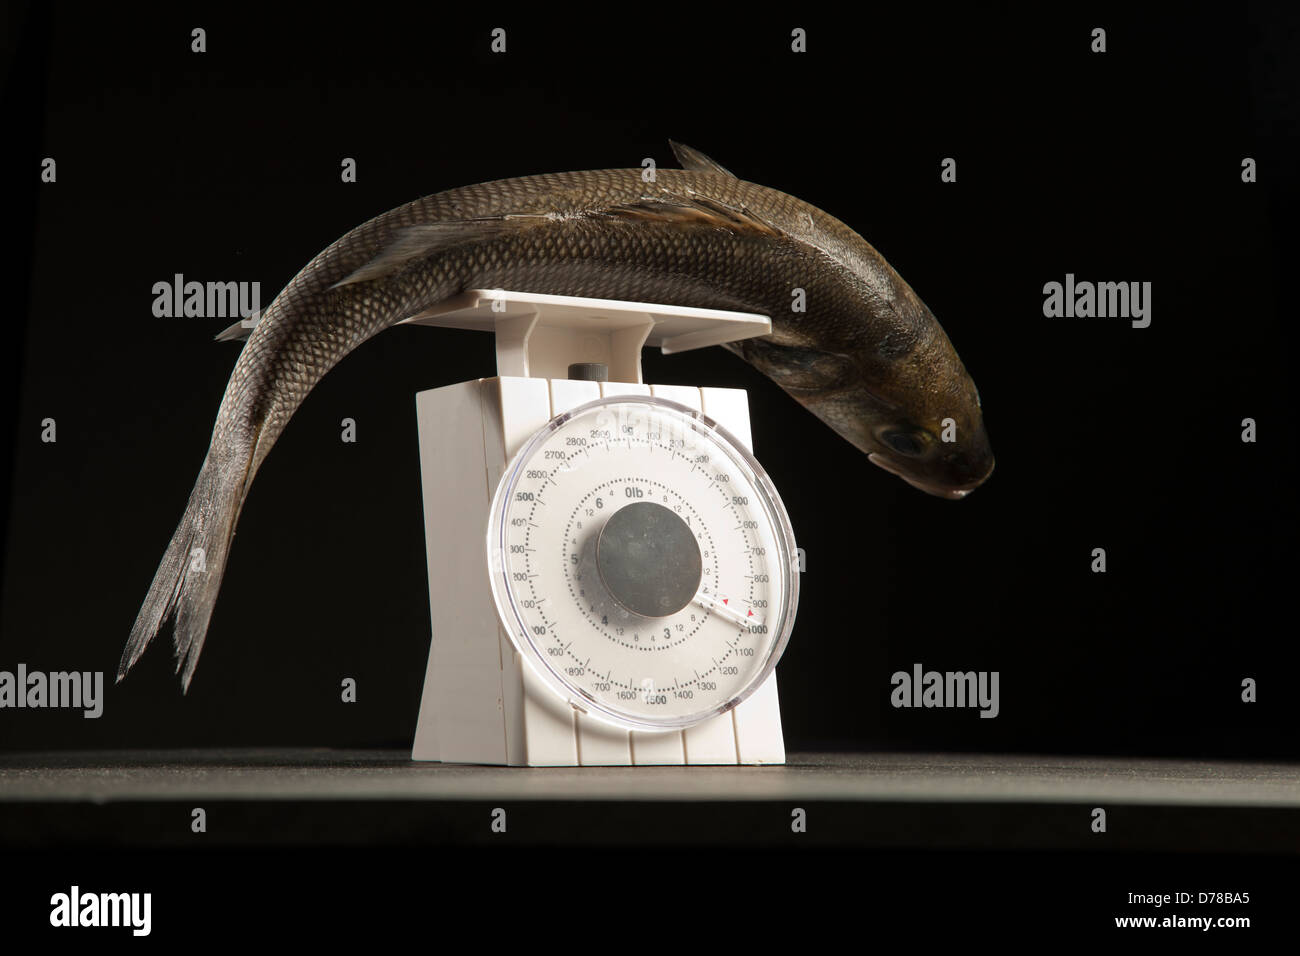 Sea Bass on scales. - Stock Image